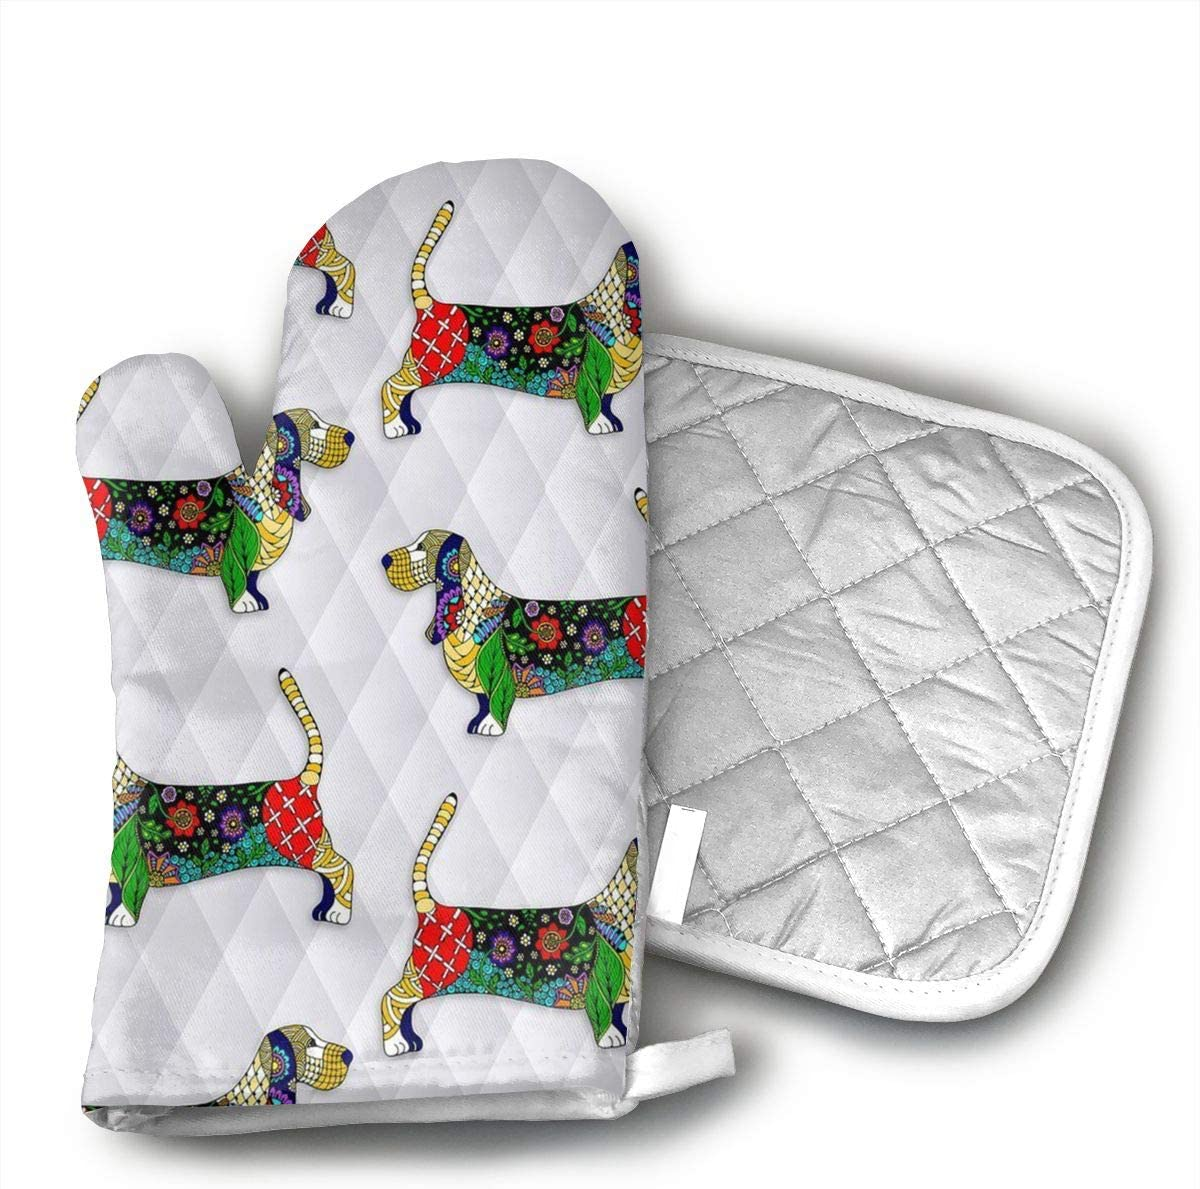 Day of The Dead Bassett Hound Oven Mitts for Kitchen Heat Resistant, Oven Gloves for BBQ Cooking Baking, Grilling,